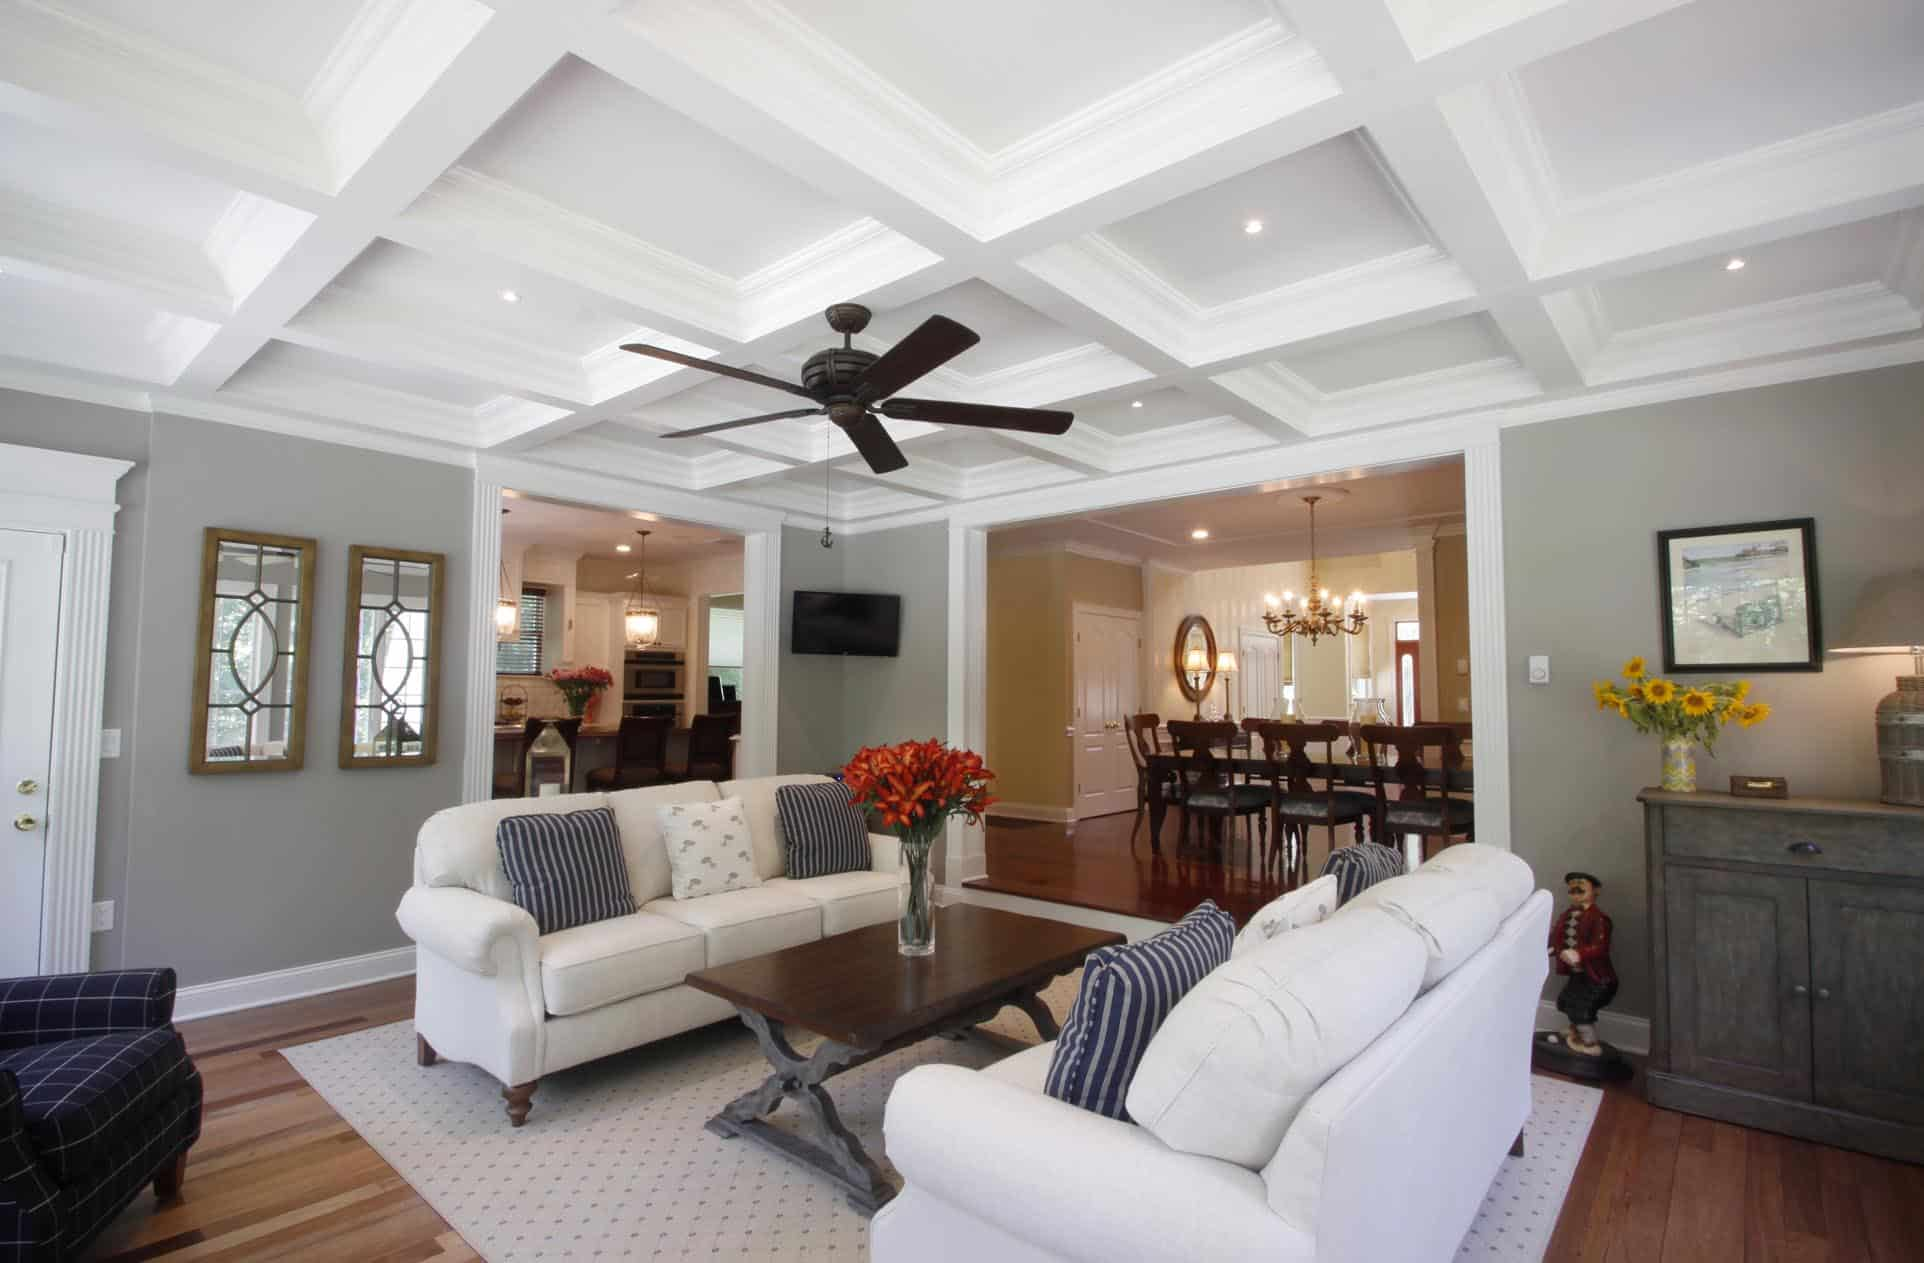 Design Coffered Ceiling Ideas coffered ceiling design beams coffer panels ceilings treatment panel faux